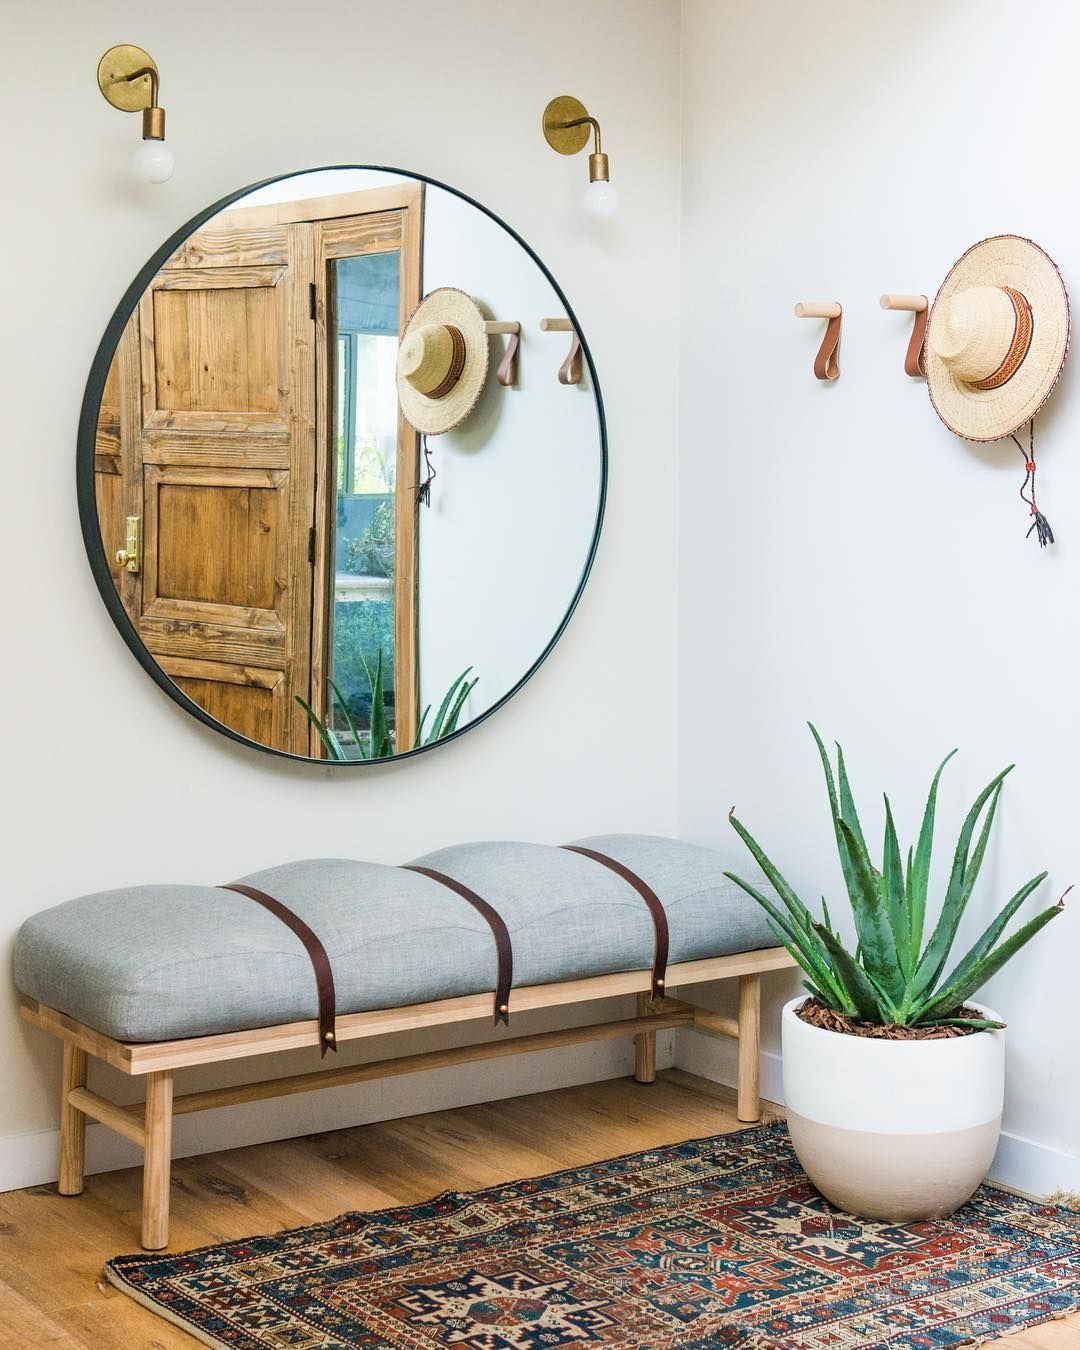 croft house round chambers mirror entrance decor modern on ideas for decorating entryway contemporary wall mirrors id=77186